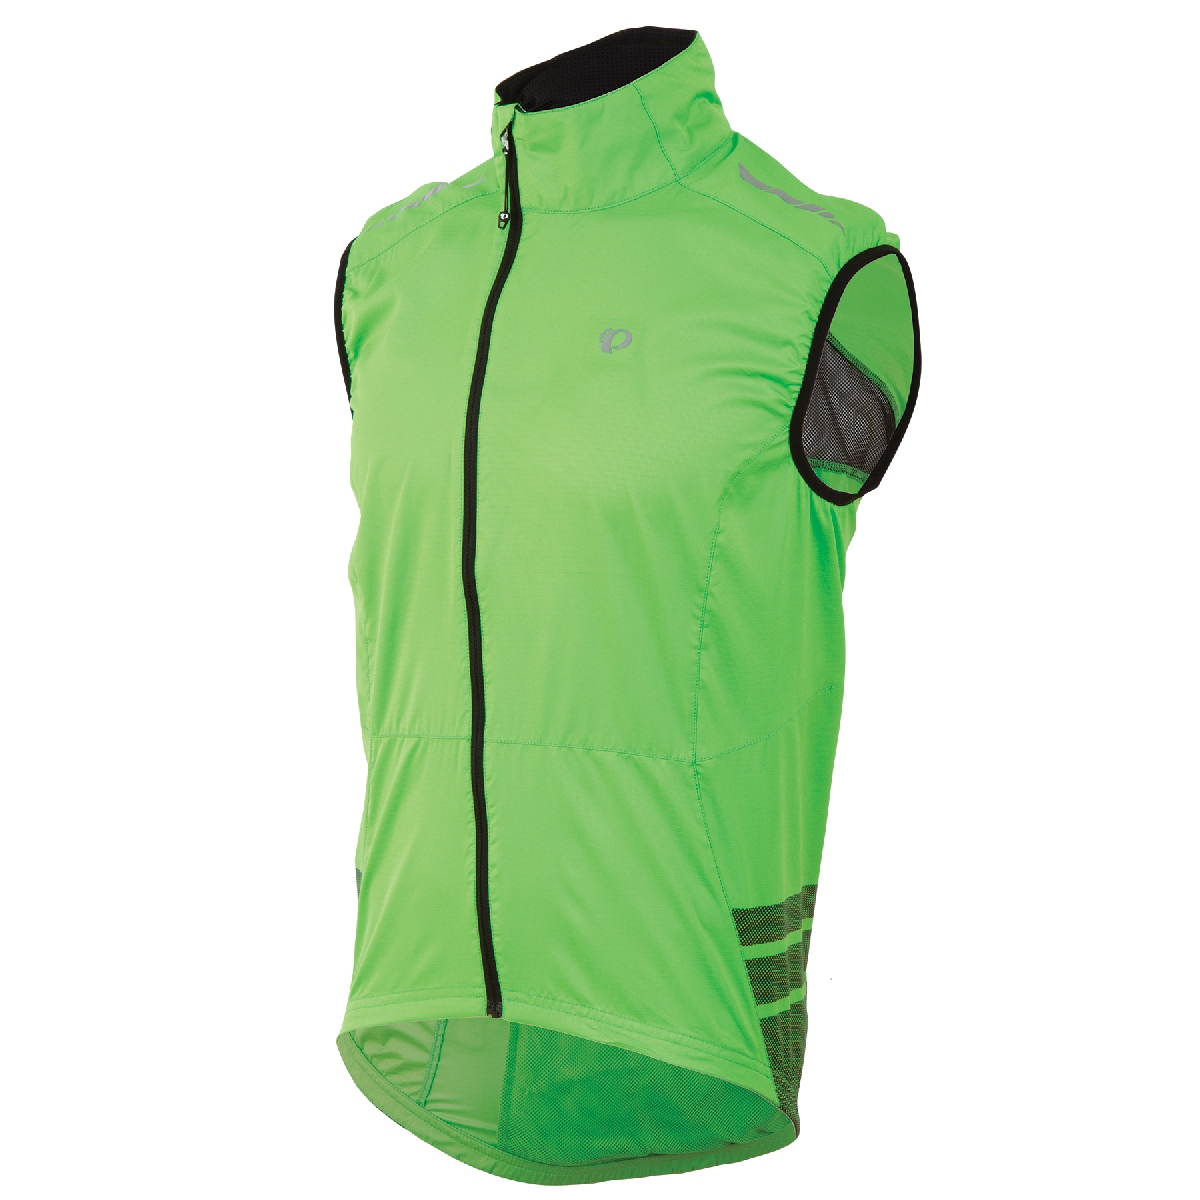 Pearl Izumi Elite Barrier Cycling Vest Men's Size M GreenFlash15 U.S.A. & Canada